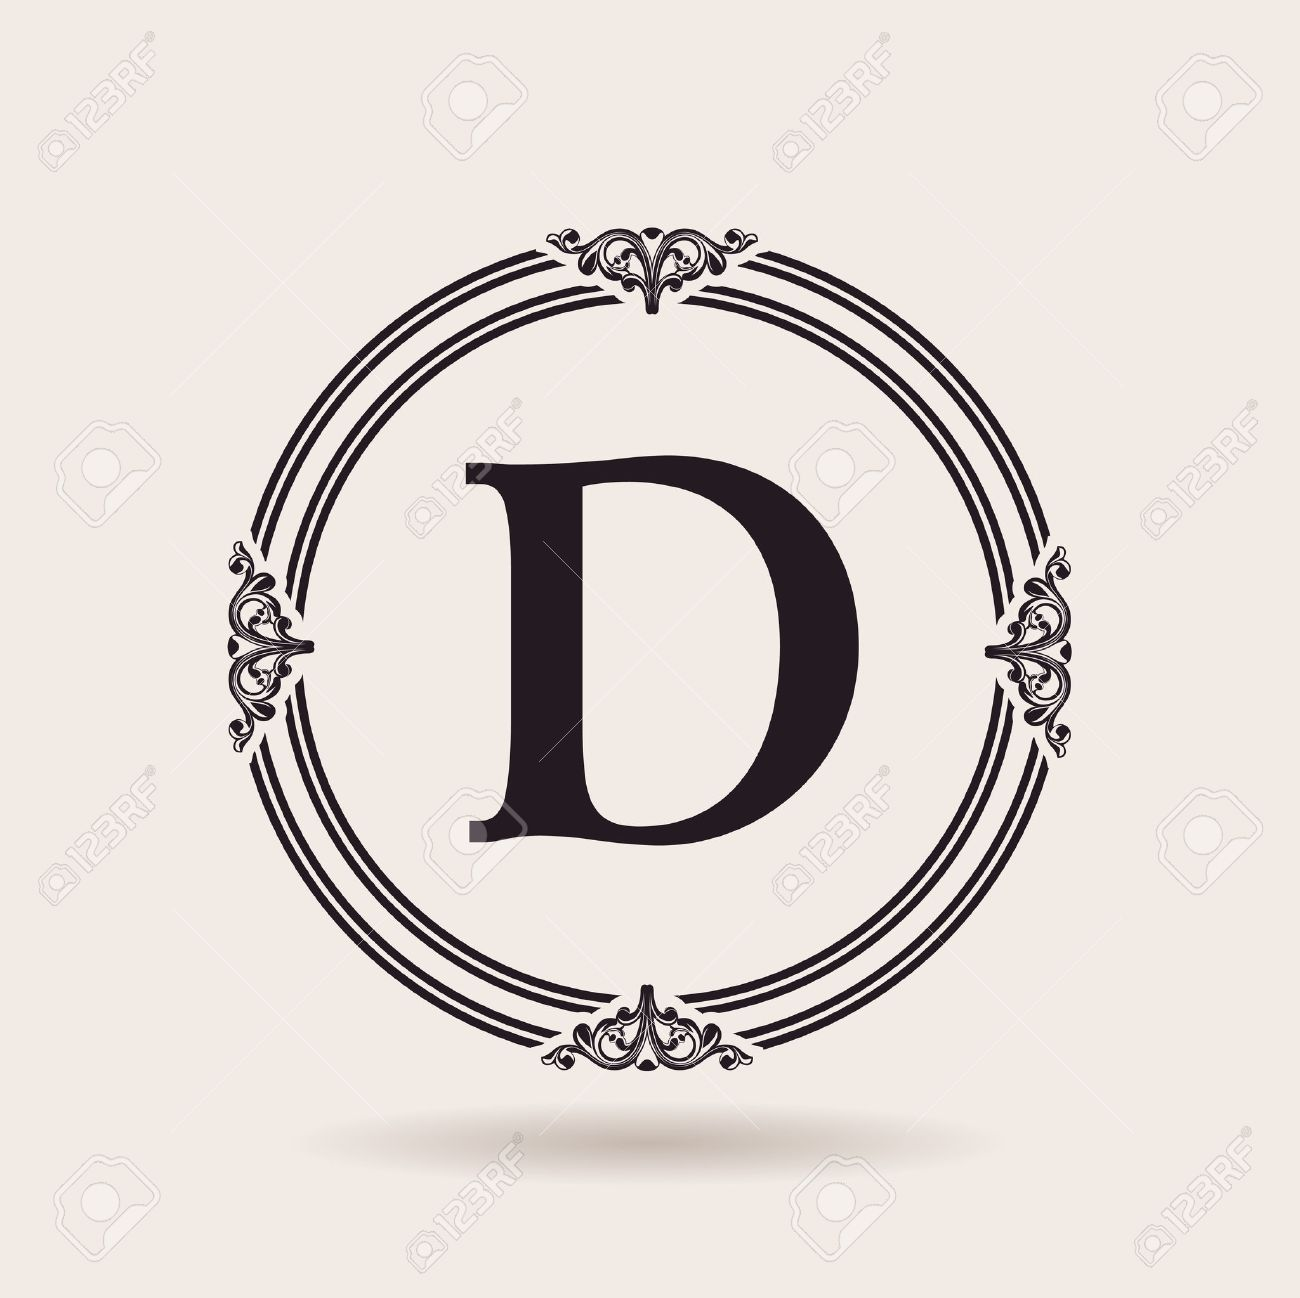 Letter D Stock Photos And Images 123rf